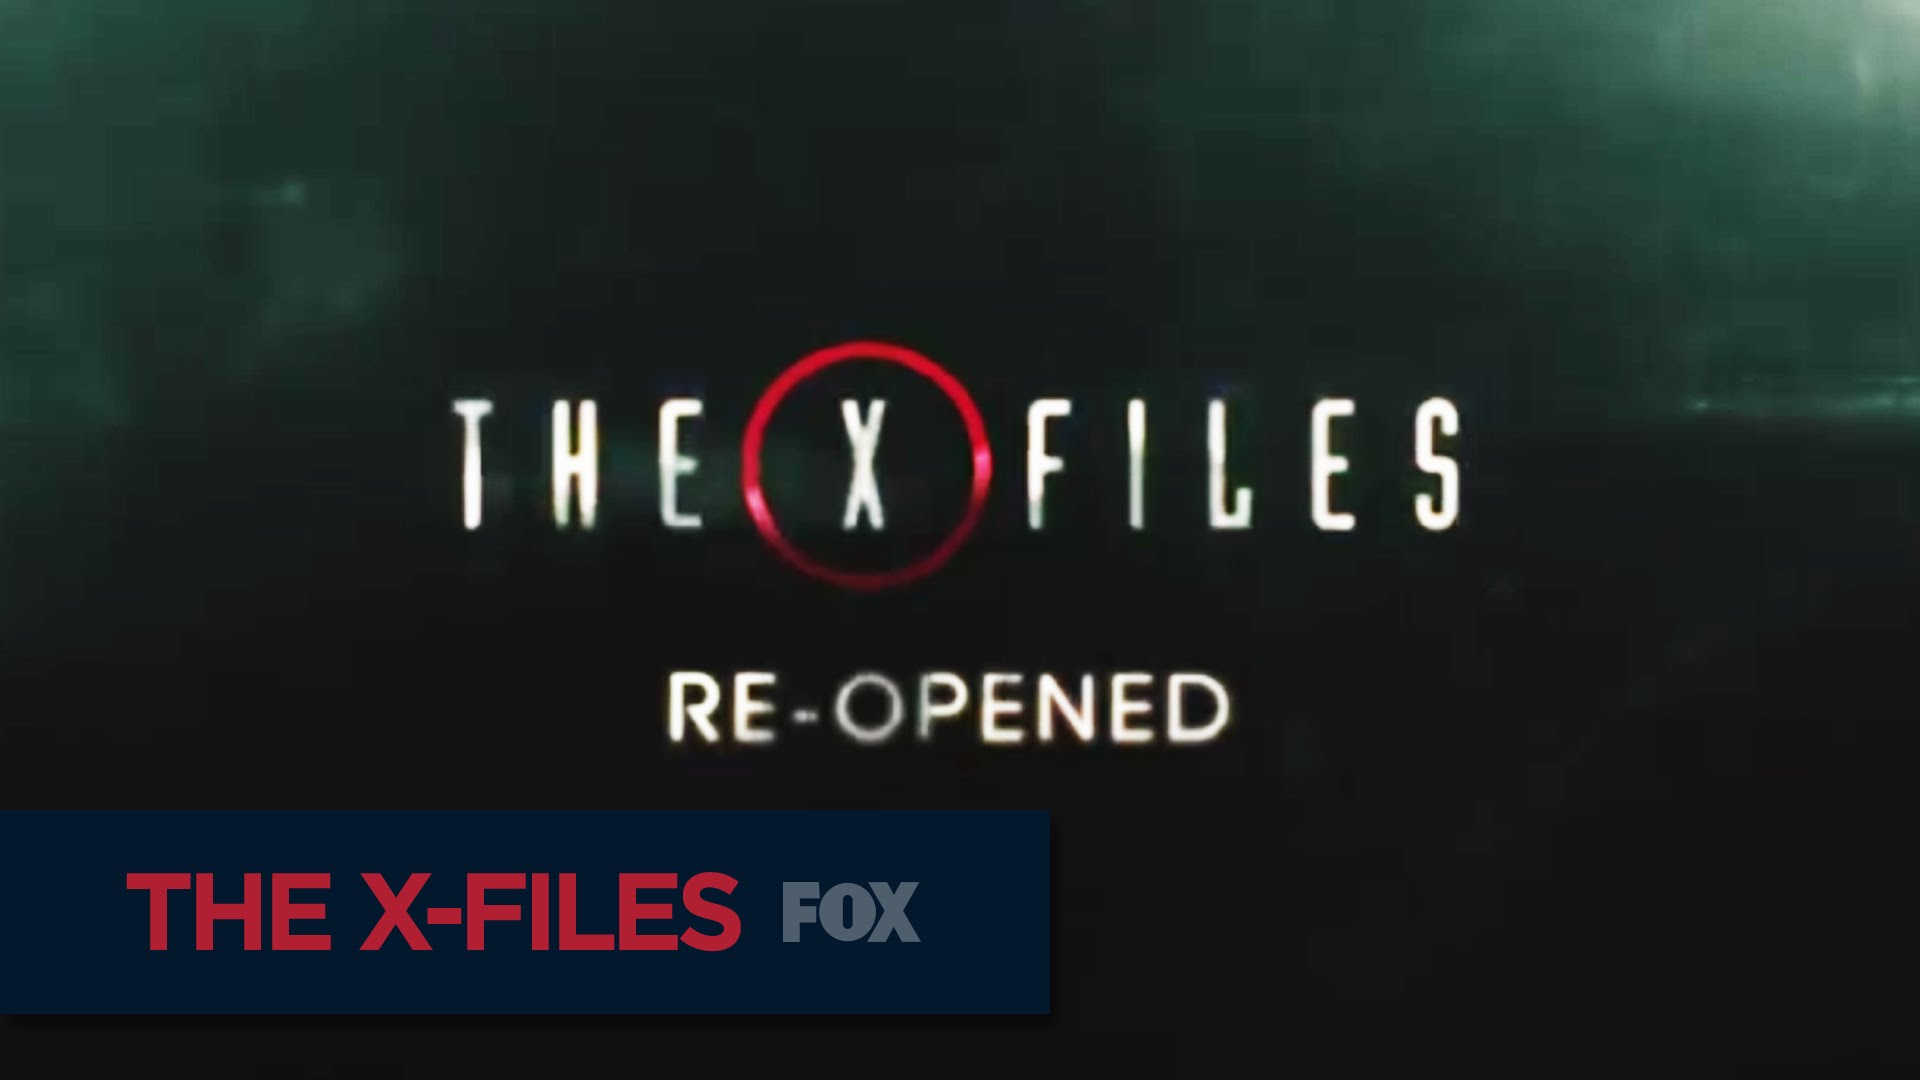 Mehr als 21 Minuten: X-FILES REOPENED Promo